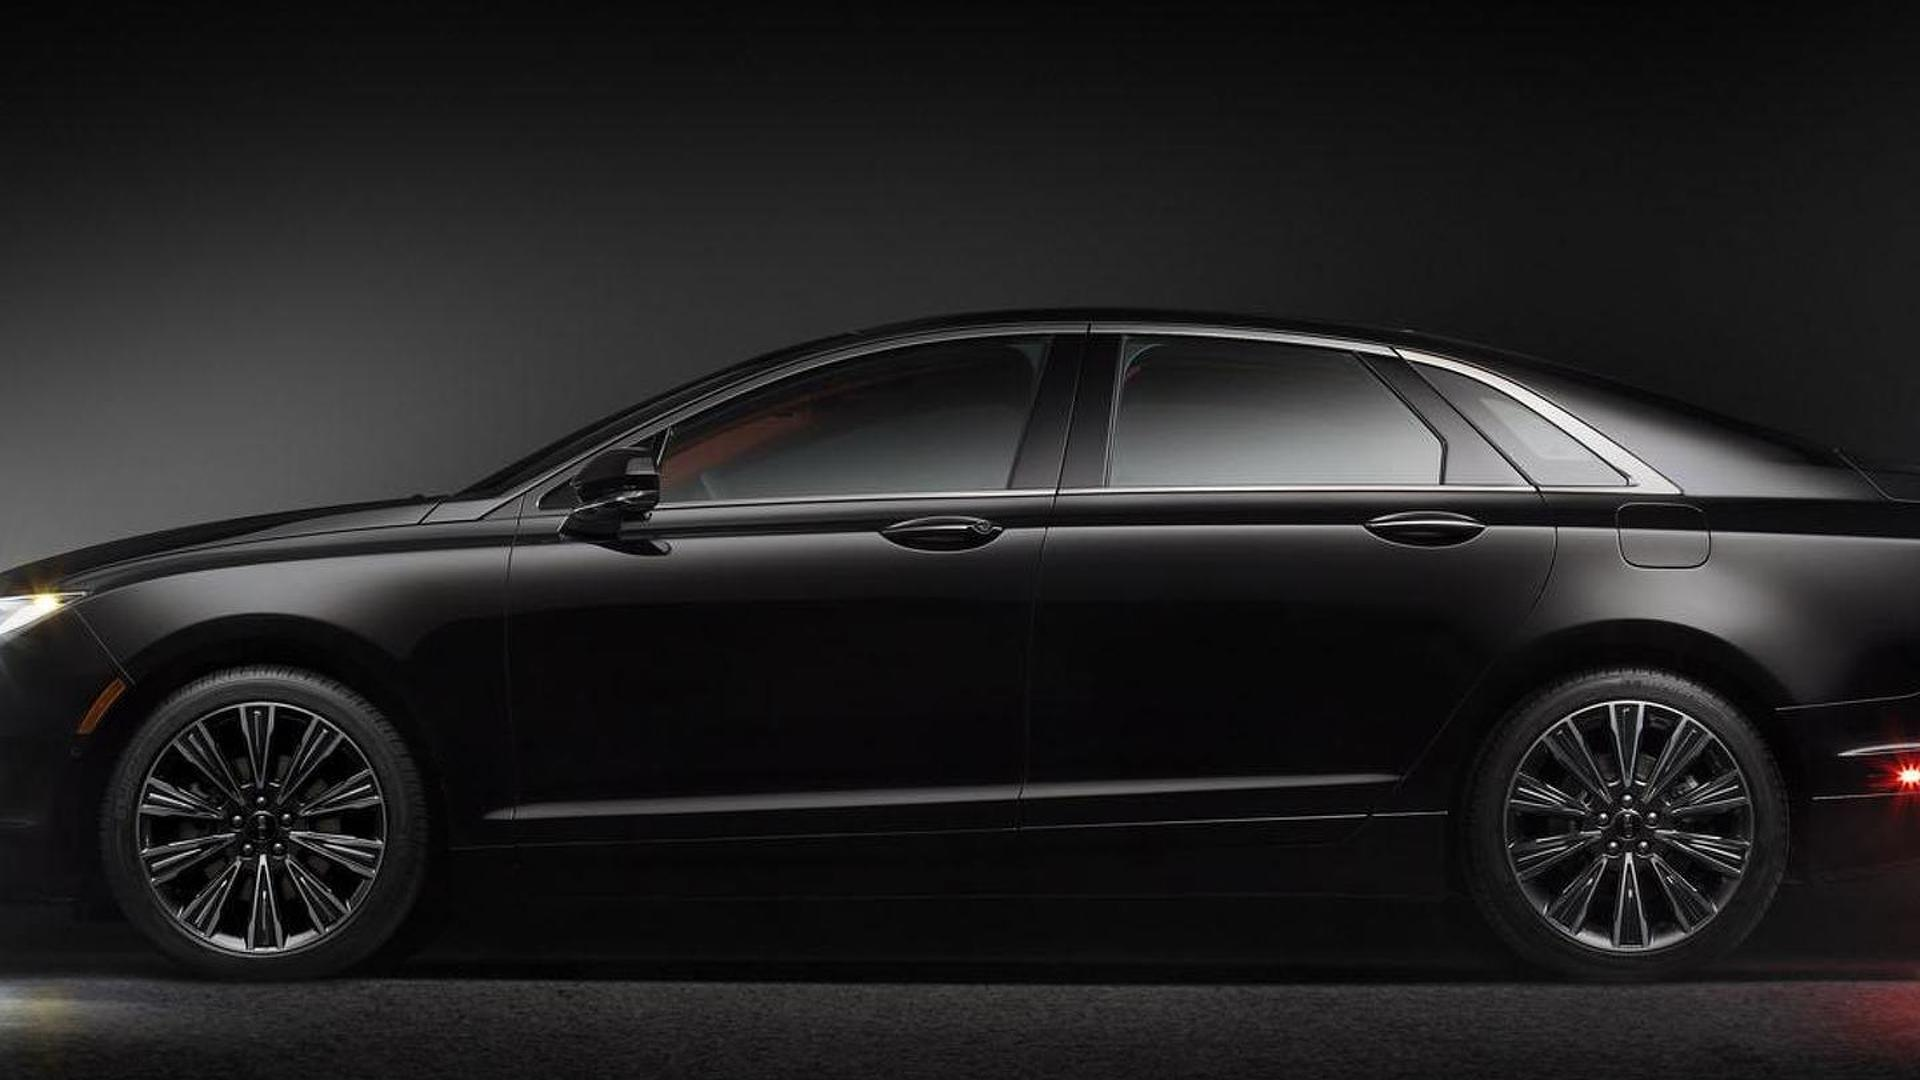 Lincoln Mkz Mkc Black Label Concepts Revealed For Pebble Beach Video